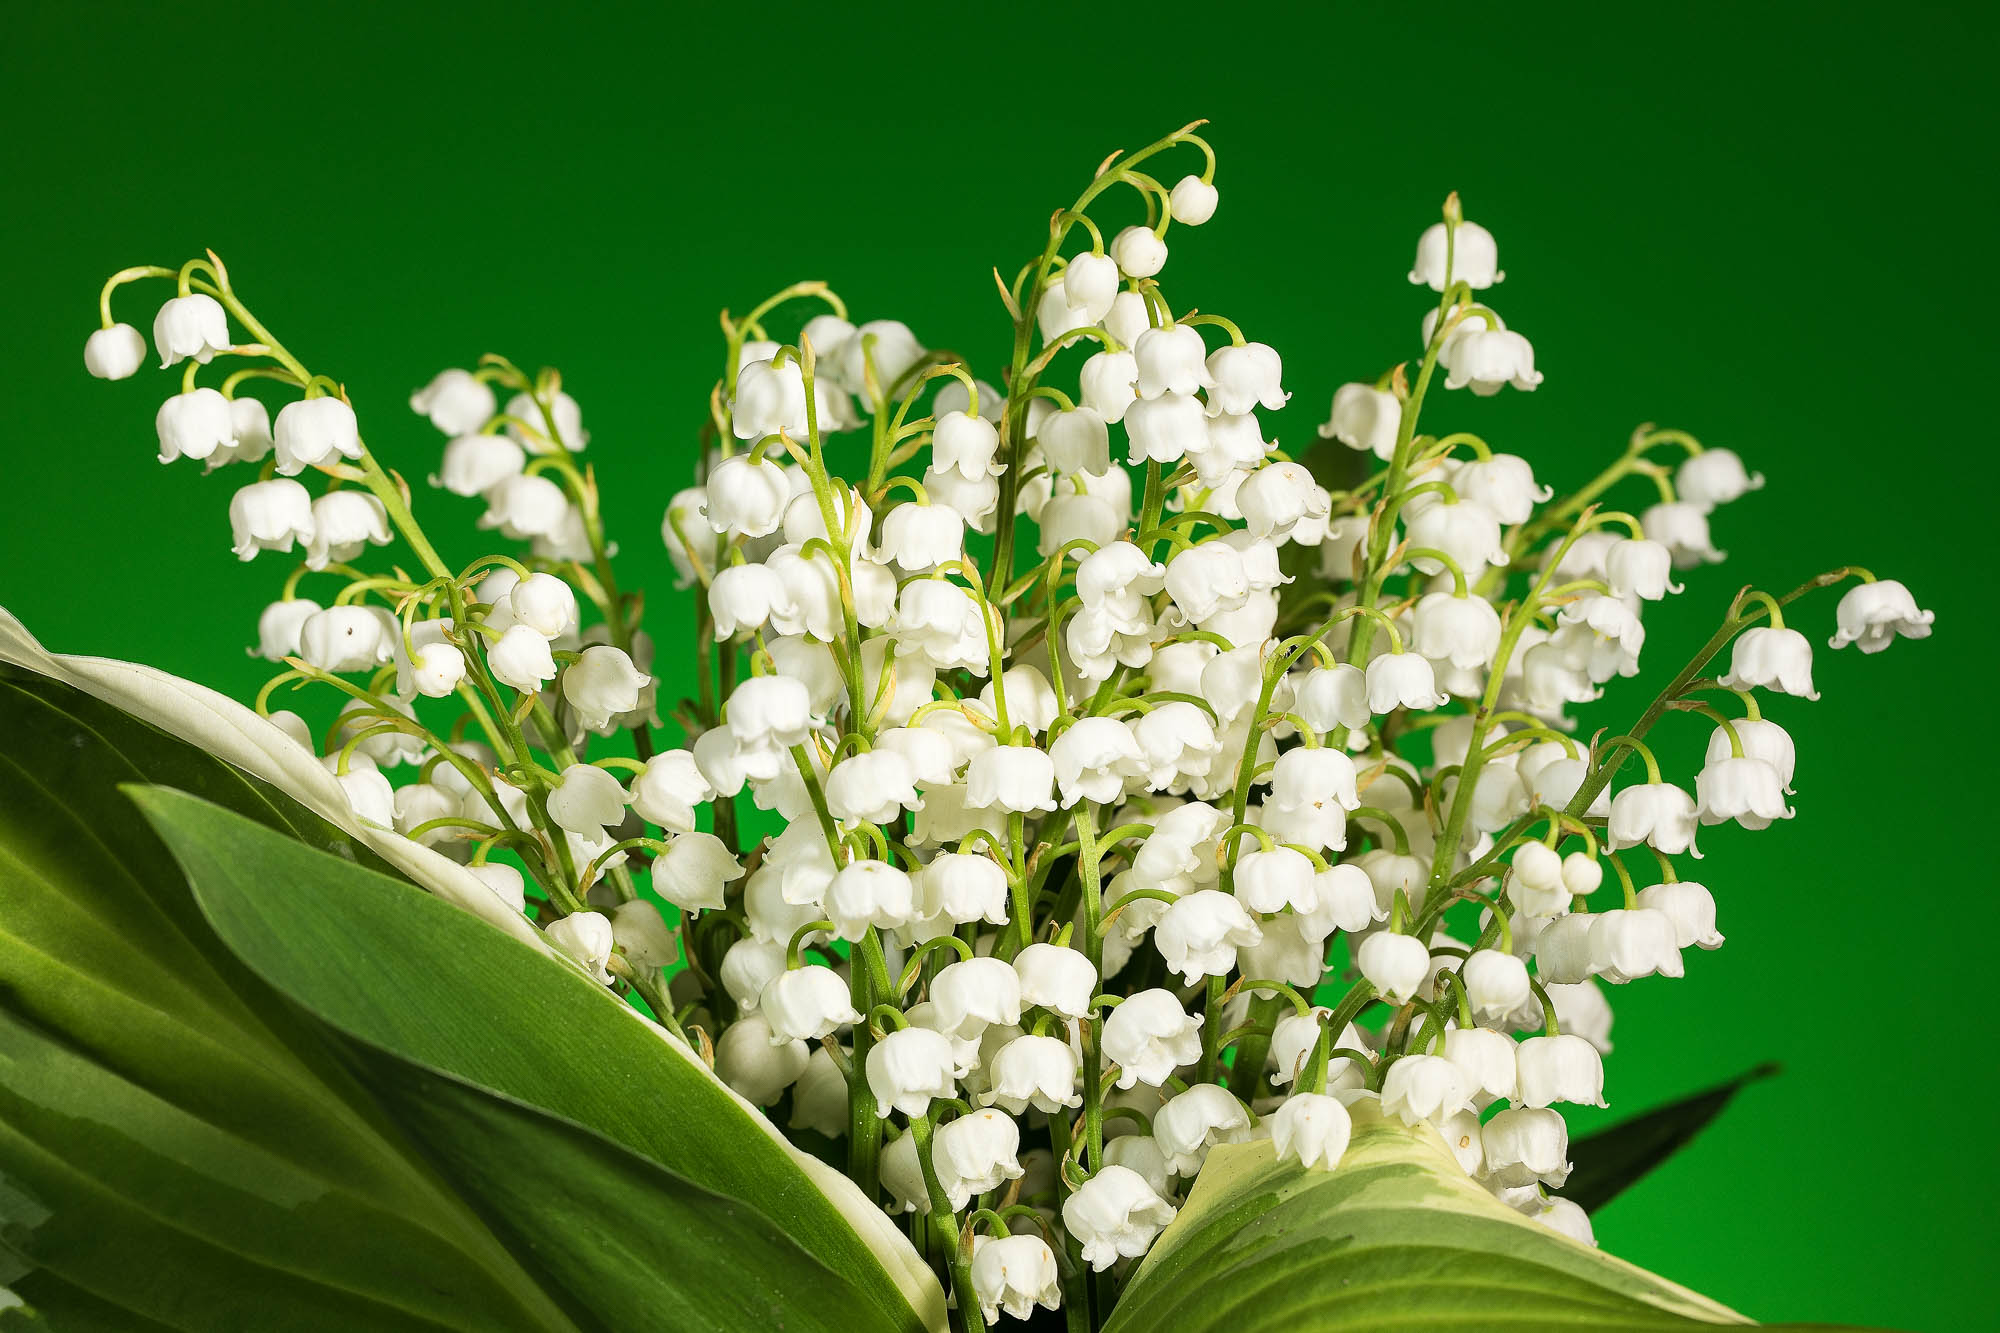 image of lily of the valley with hosta leaves